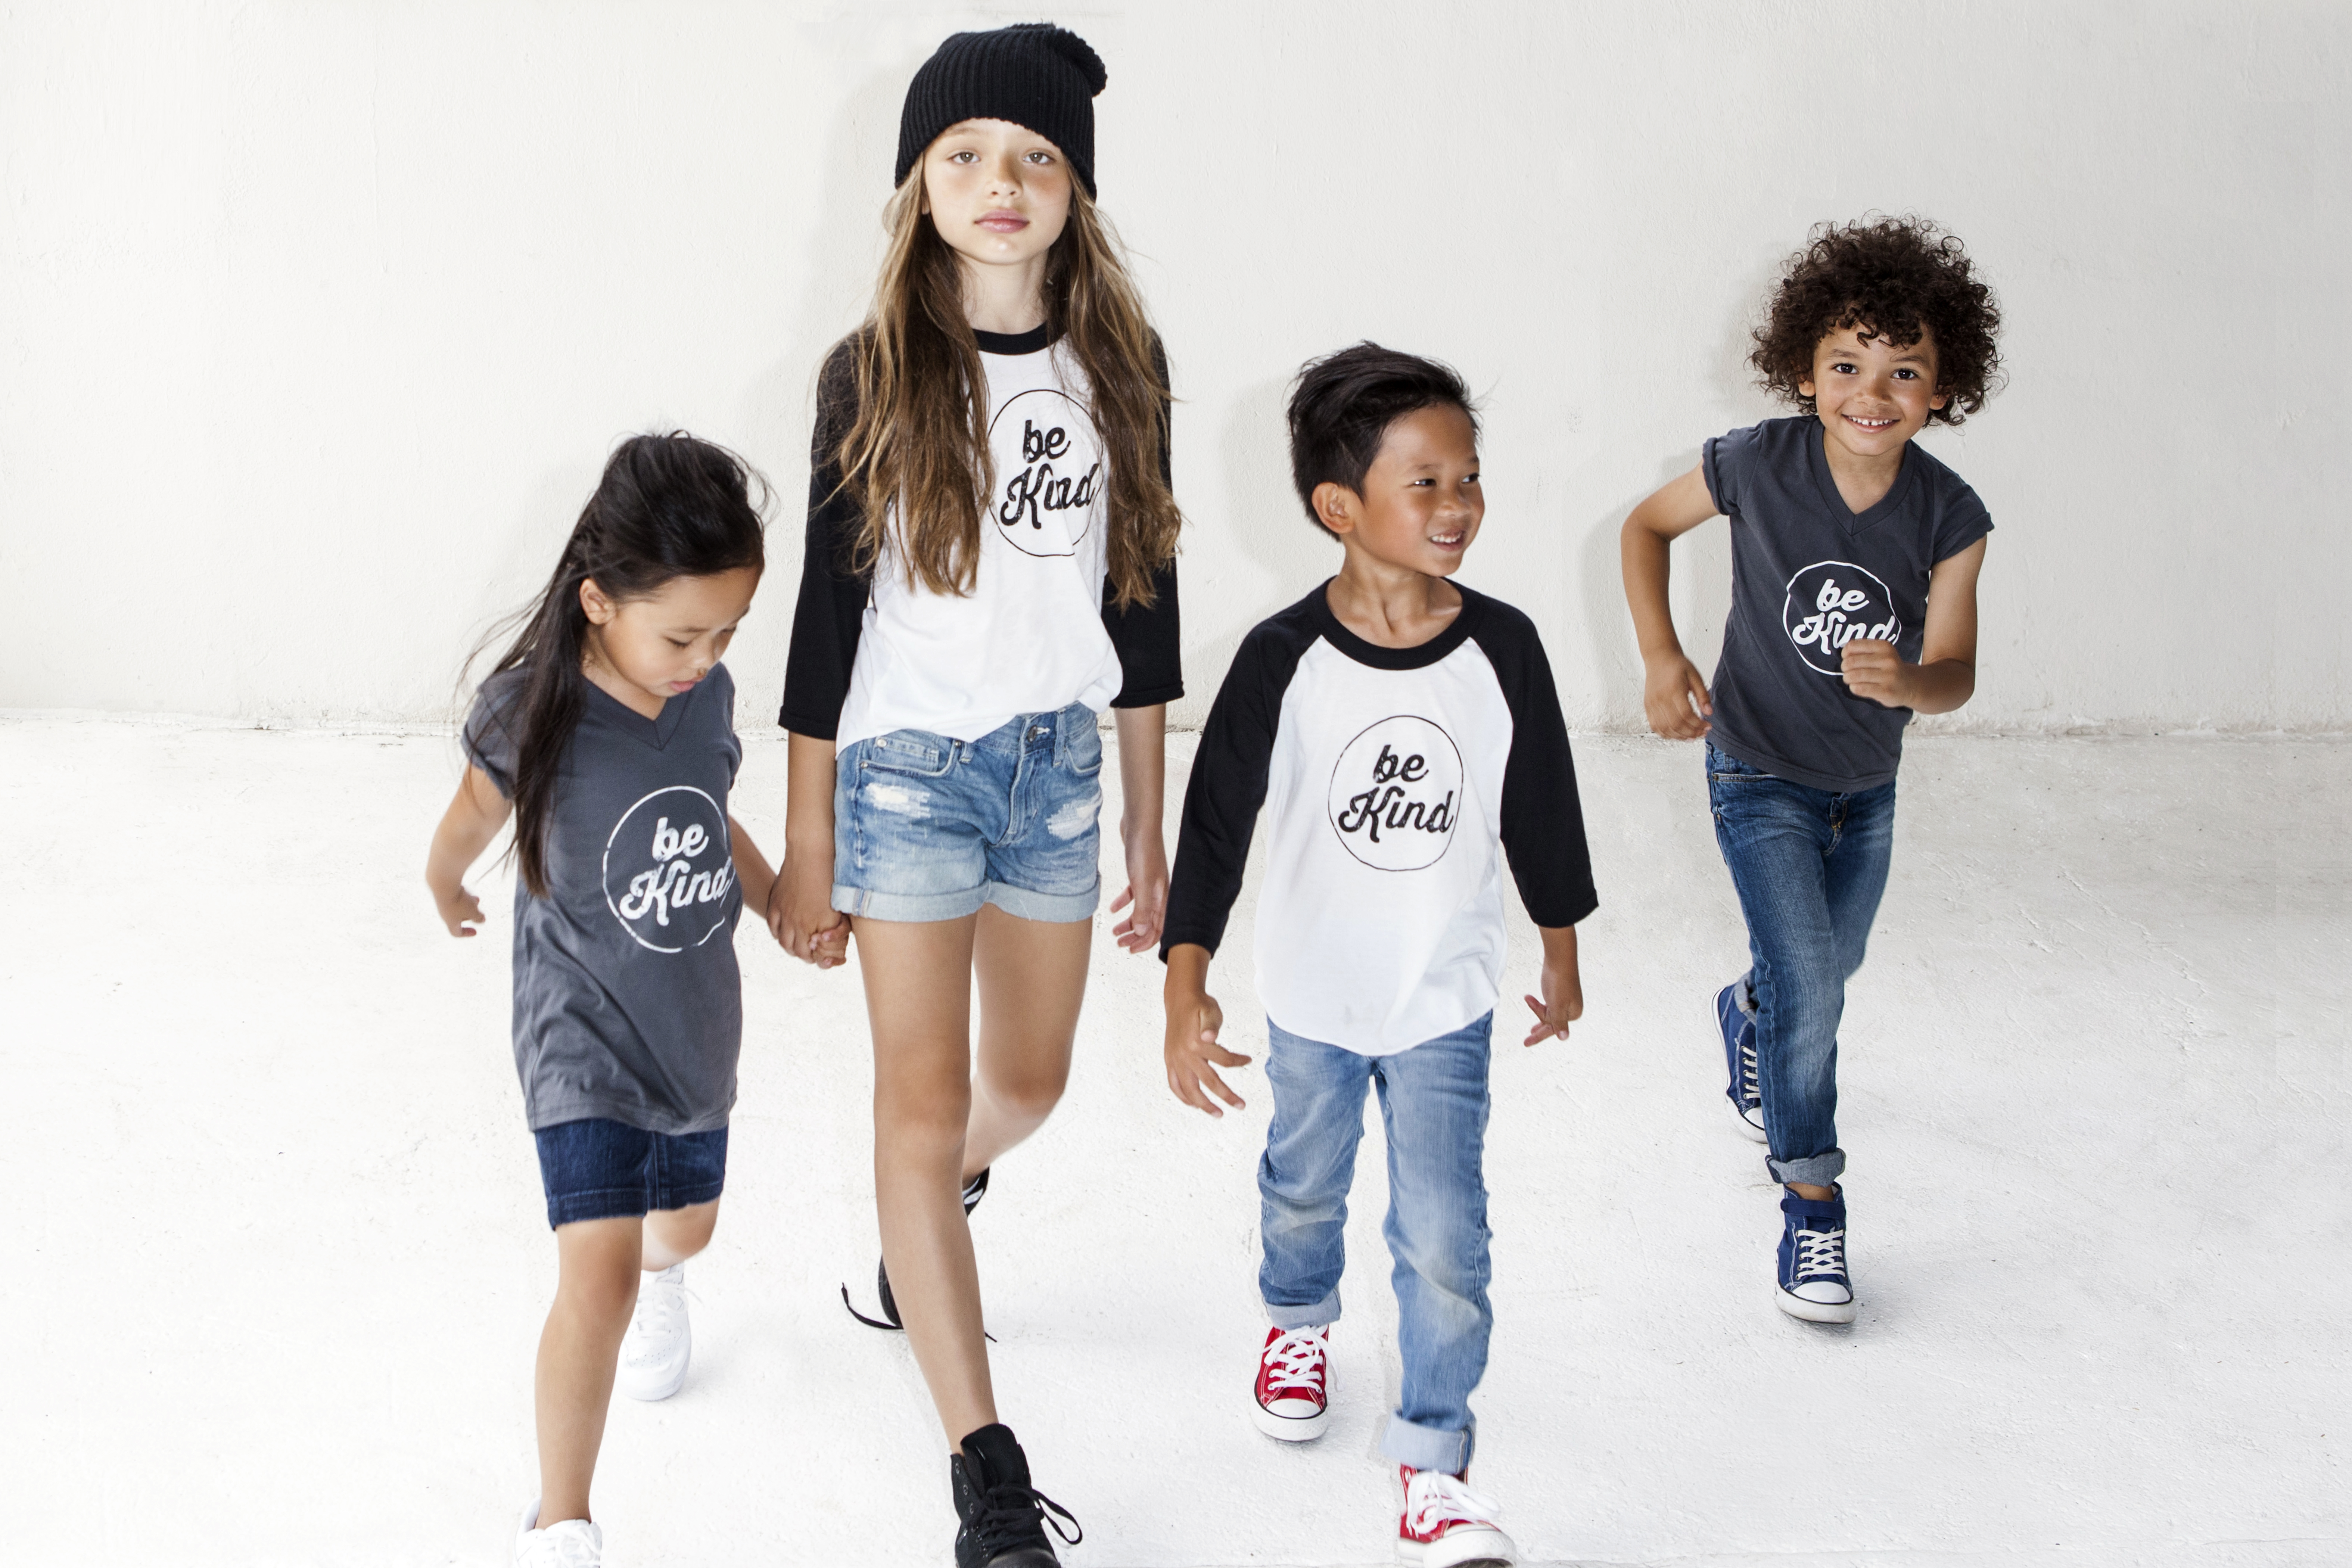 Zuri Model and Talent + The Be Kind Collection